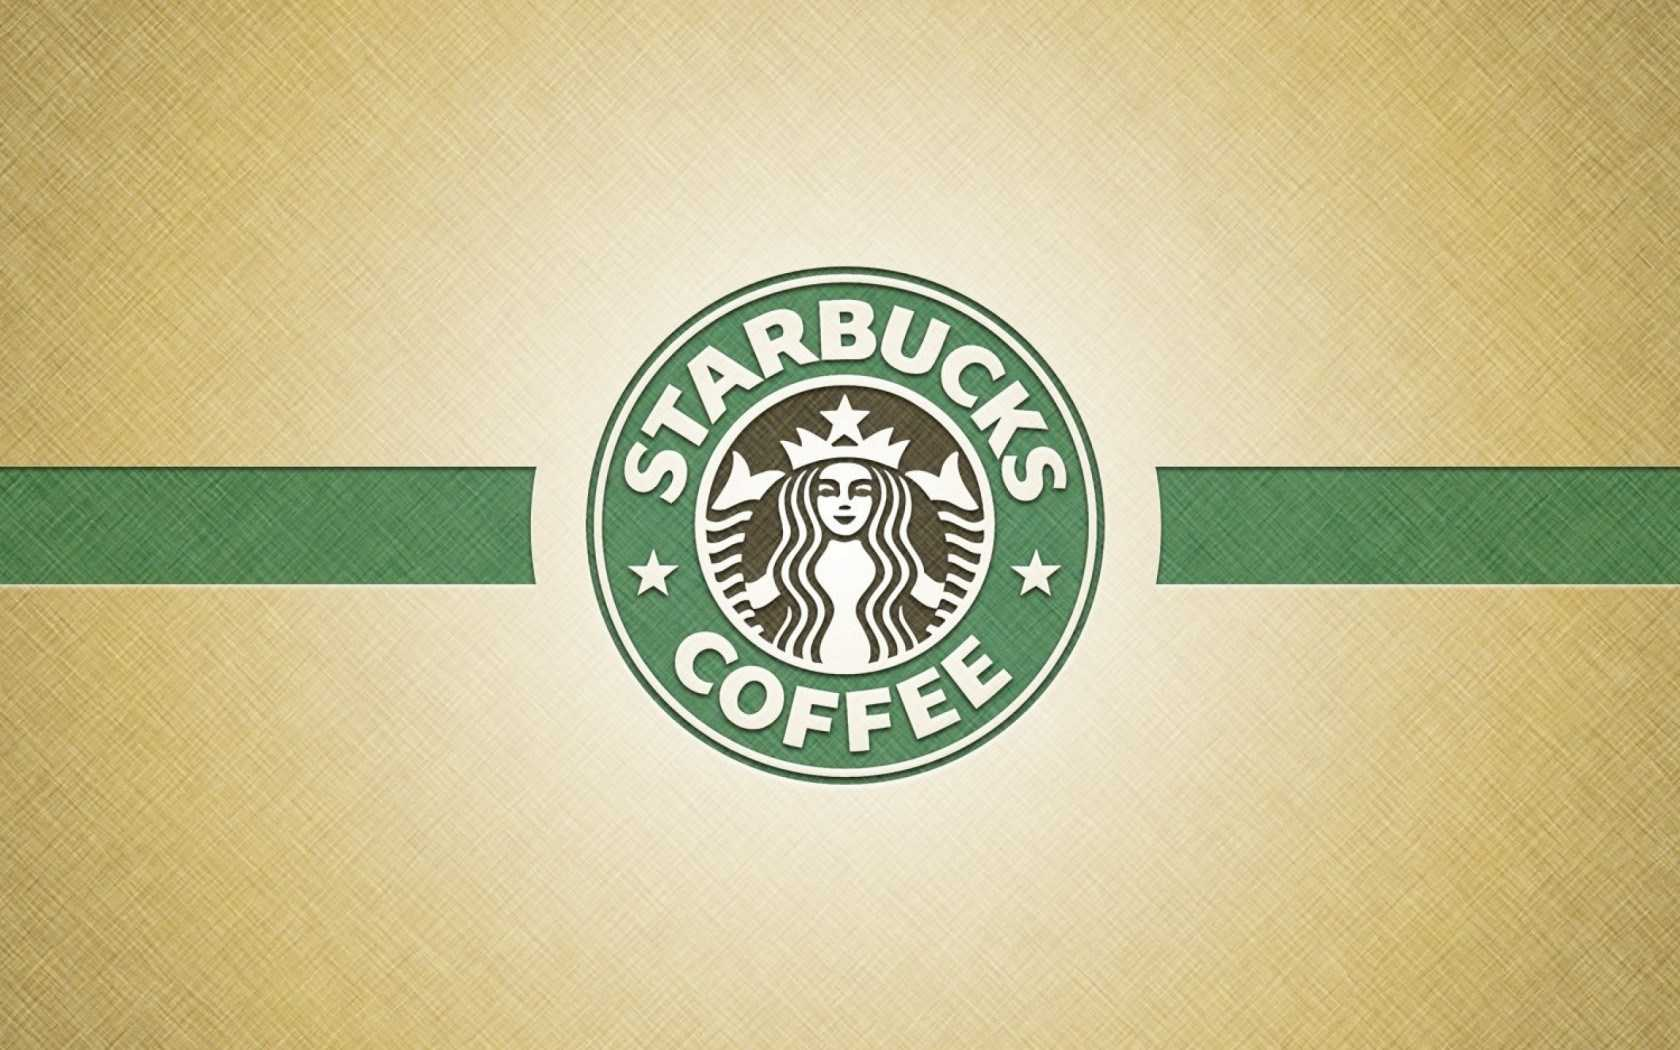 Starbucks Ppt Background - Powerpoint Backgrounds For Free With Starbucks Powerpoint Template